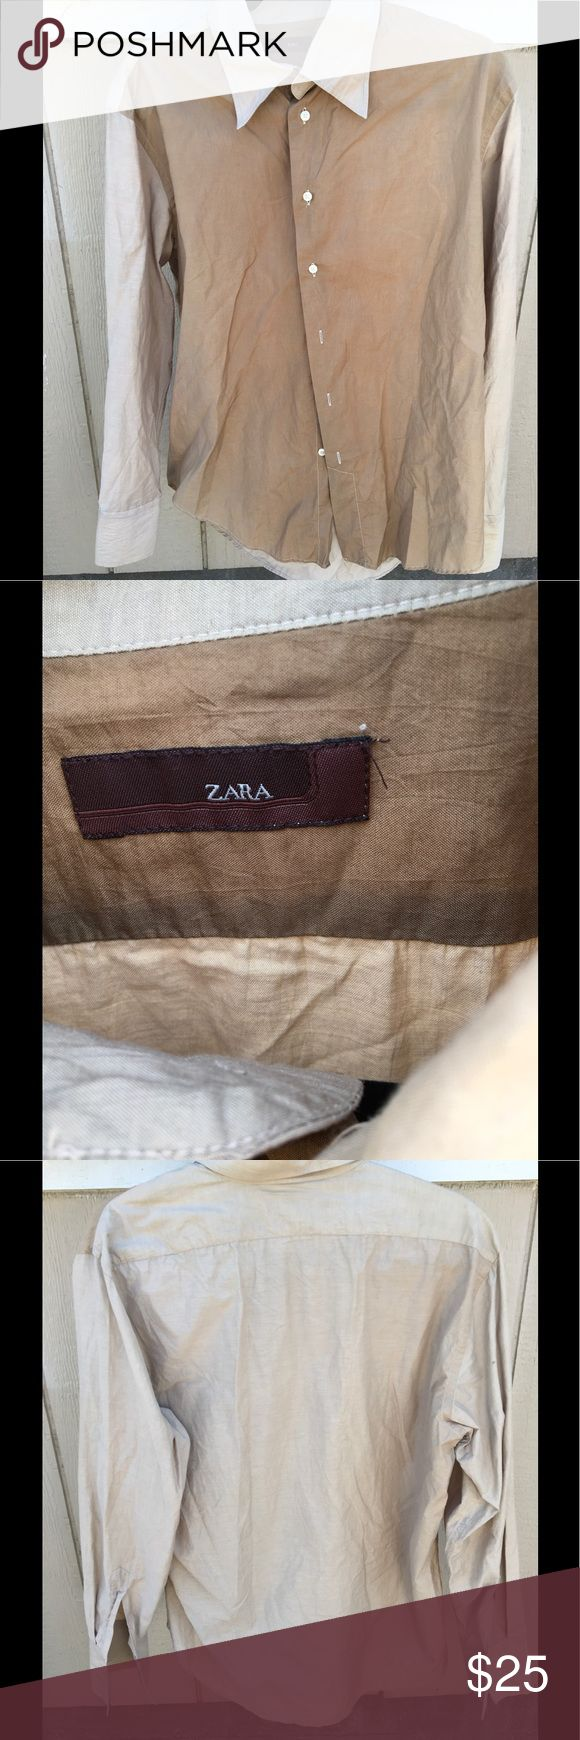 Zara Button Down Shirt Zara Button Down Shirt, no flaws Zara Shirts Casual Button Down Shirts